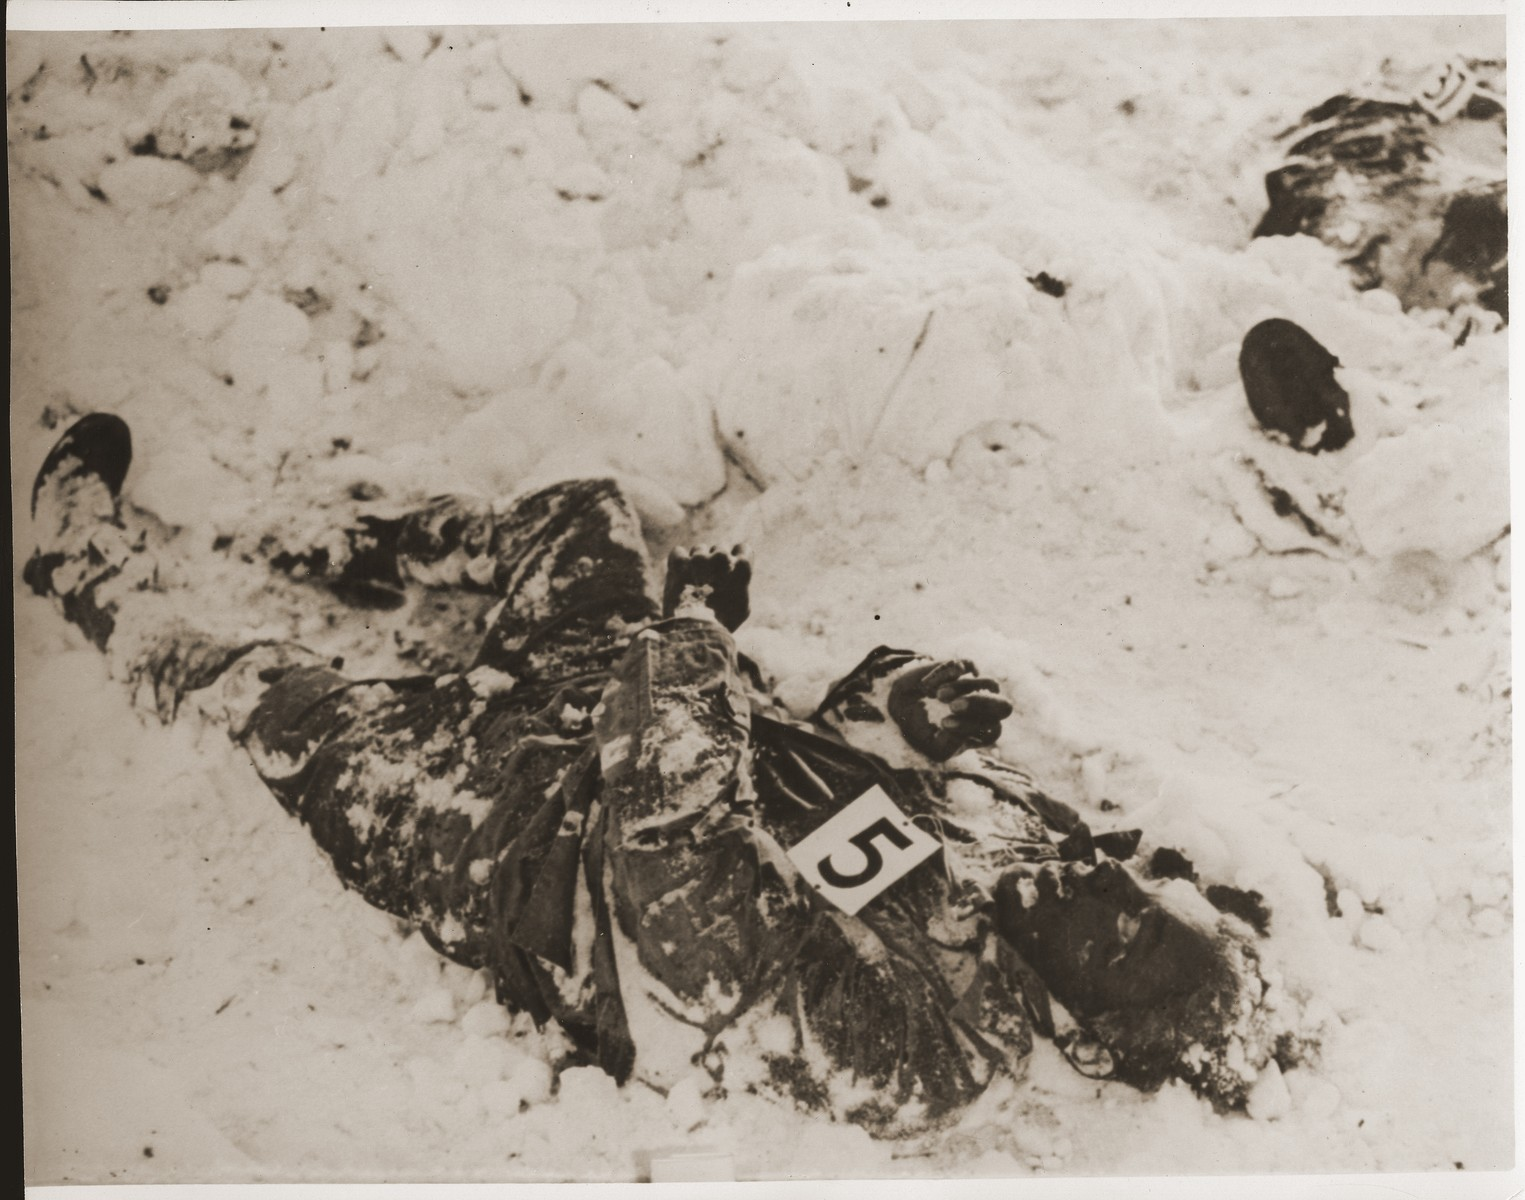 """The corpse of an American soldier killed by the SS in the Malmedy atrocity.  The caption on the back of the photograph reads, """"ETO HG 45, MASTER CAPTION.  Atrocities committed by German troops in the vicinity of Five Points, near Malmedy, Belgium, on or about 17 December, 1944.  Photograph made after recapture of ground and exhumation of bodies."""""""